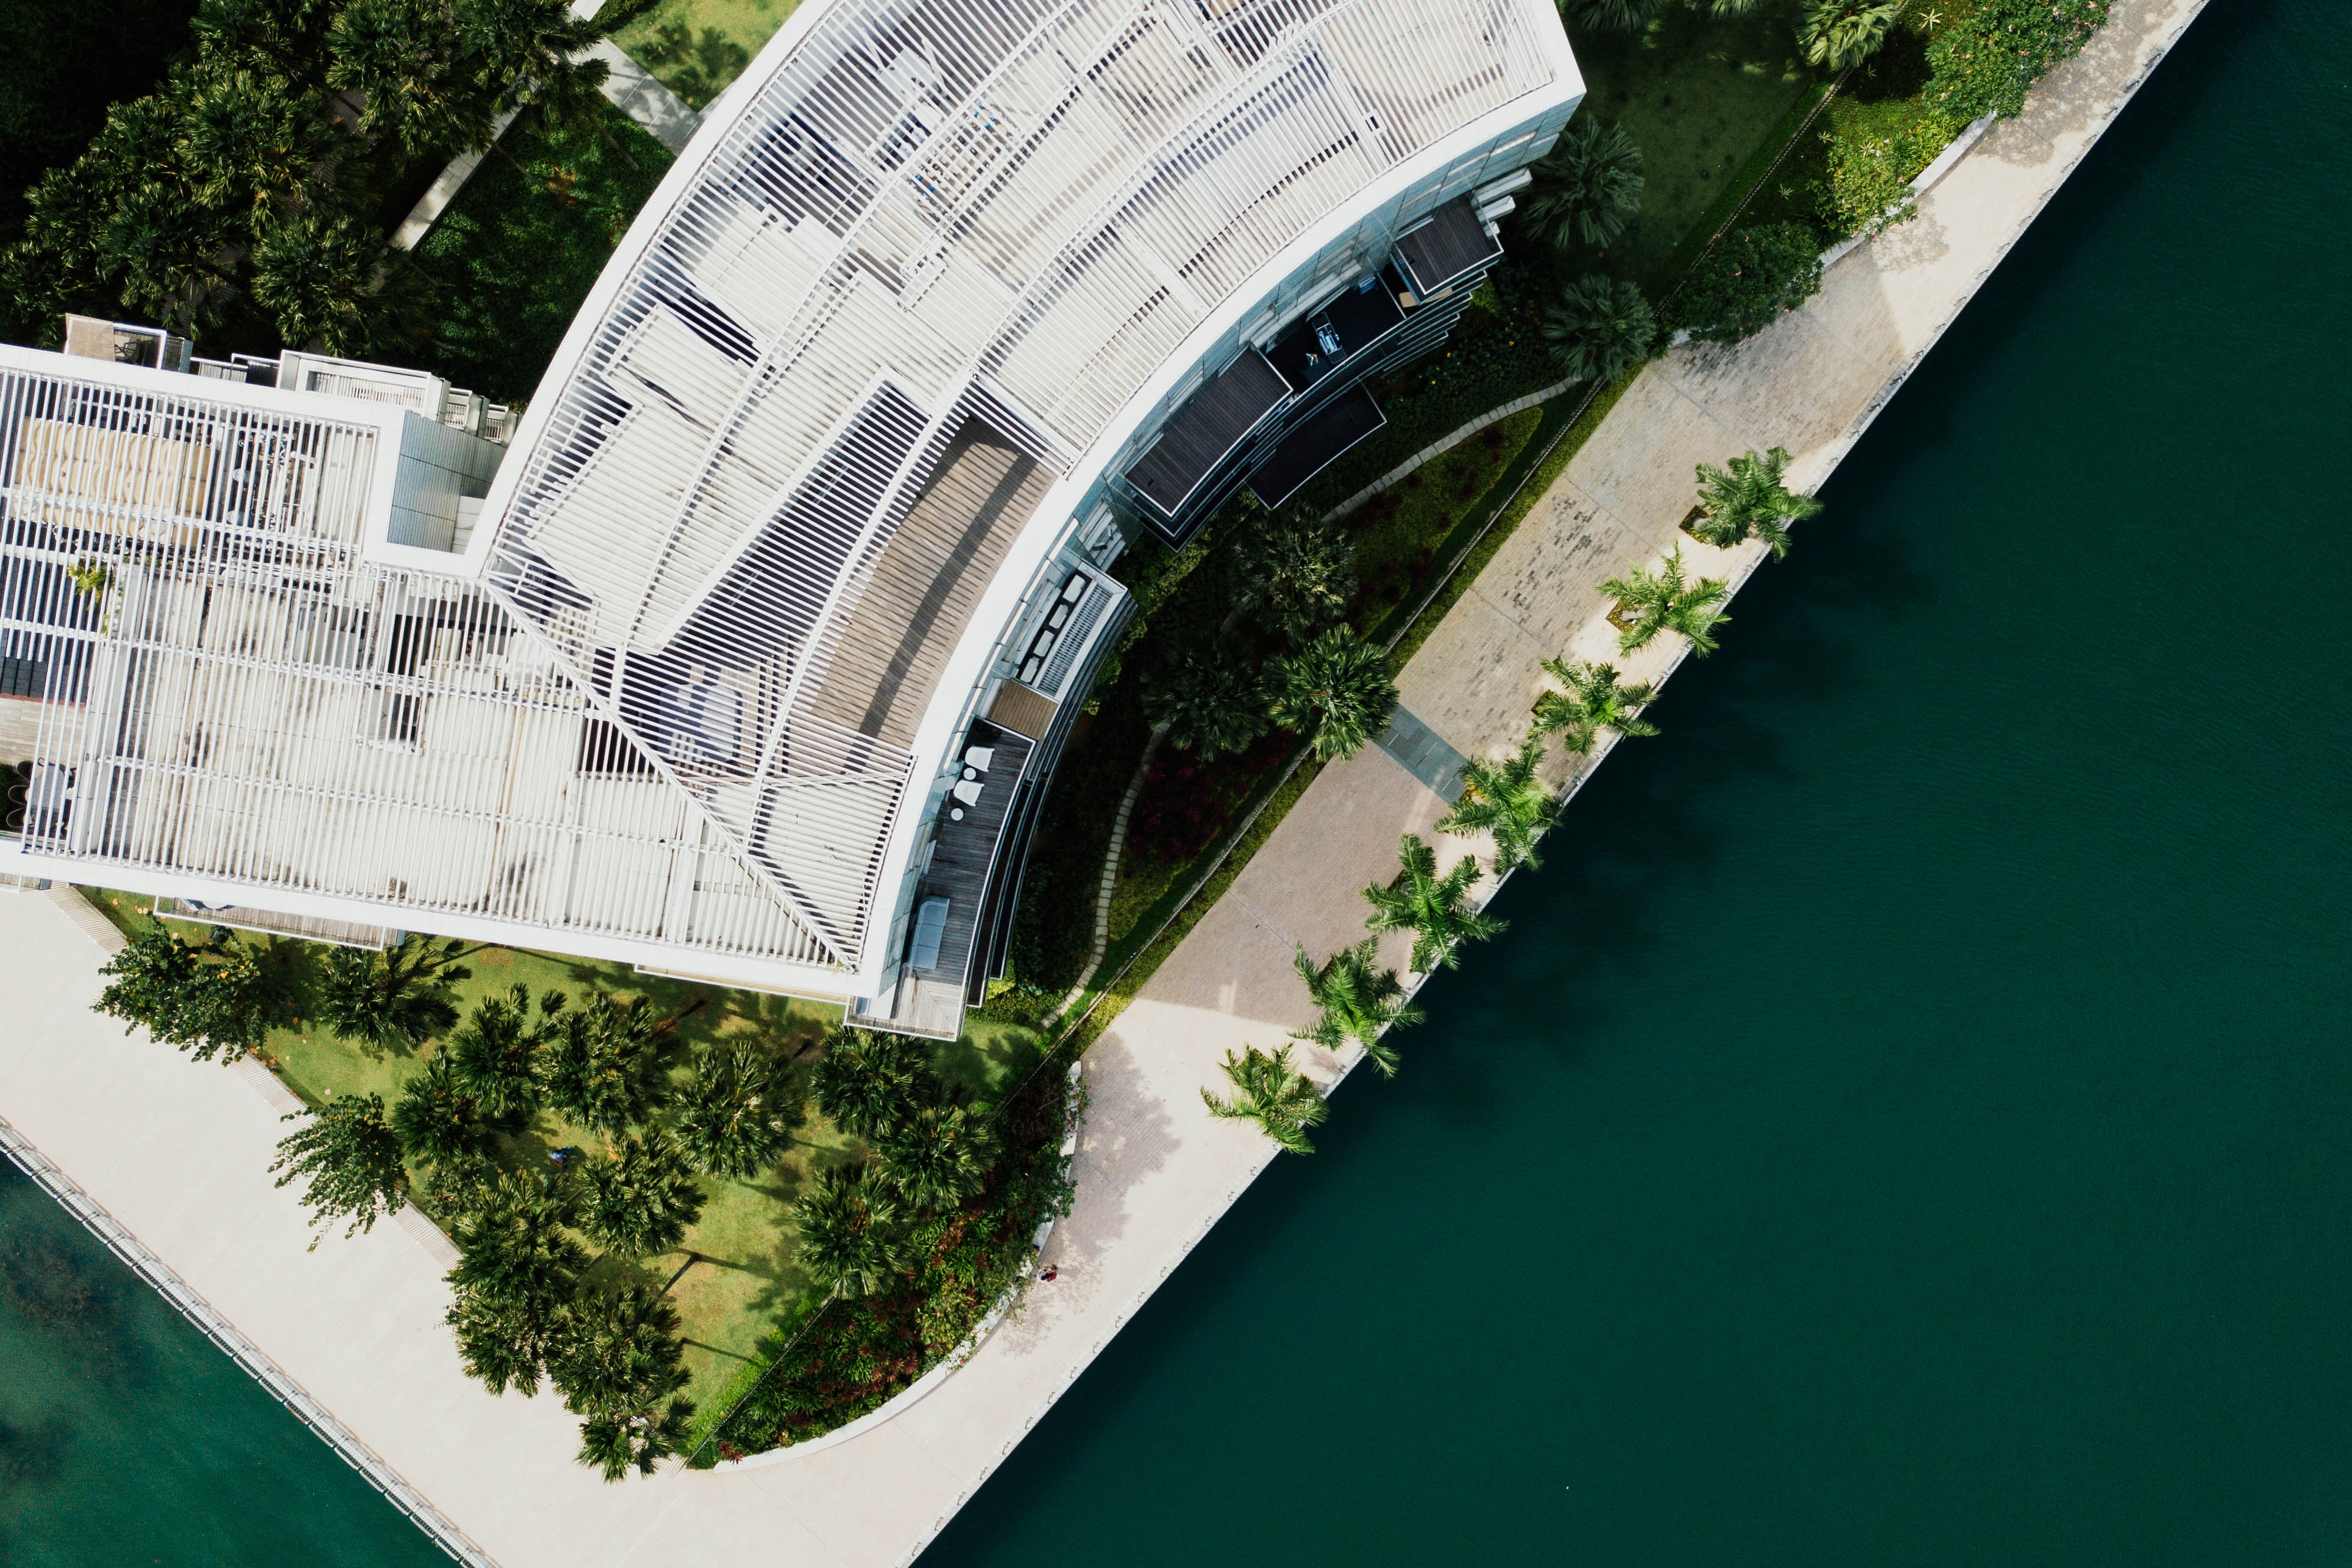 bird's eye view photography of a mid-rise building surrounded by trees near green body of water